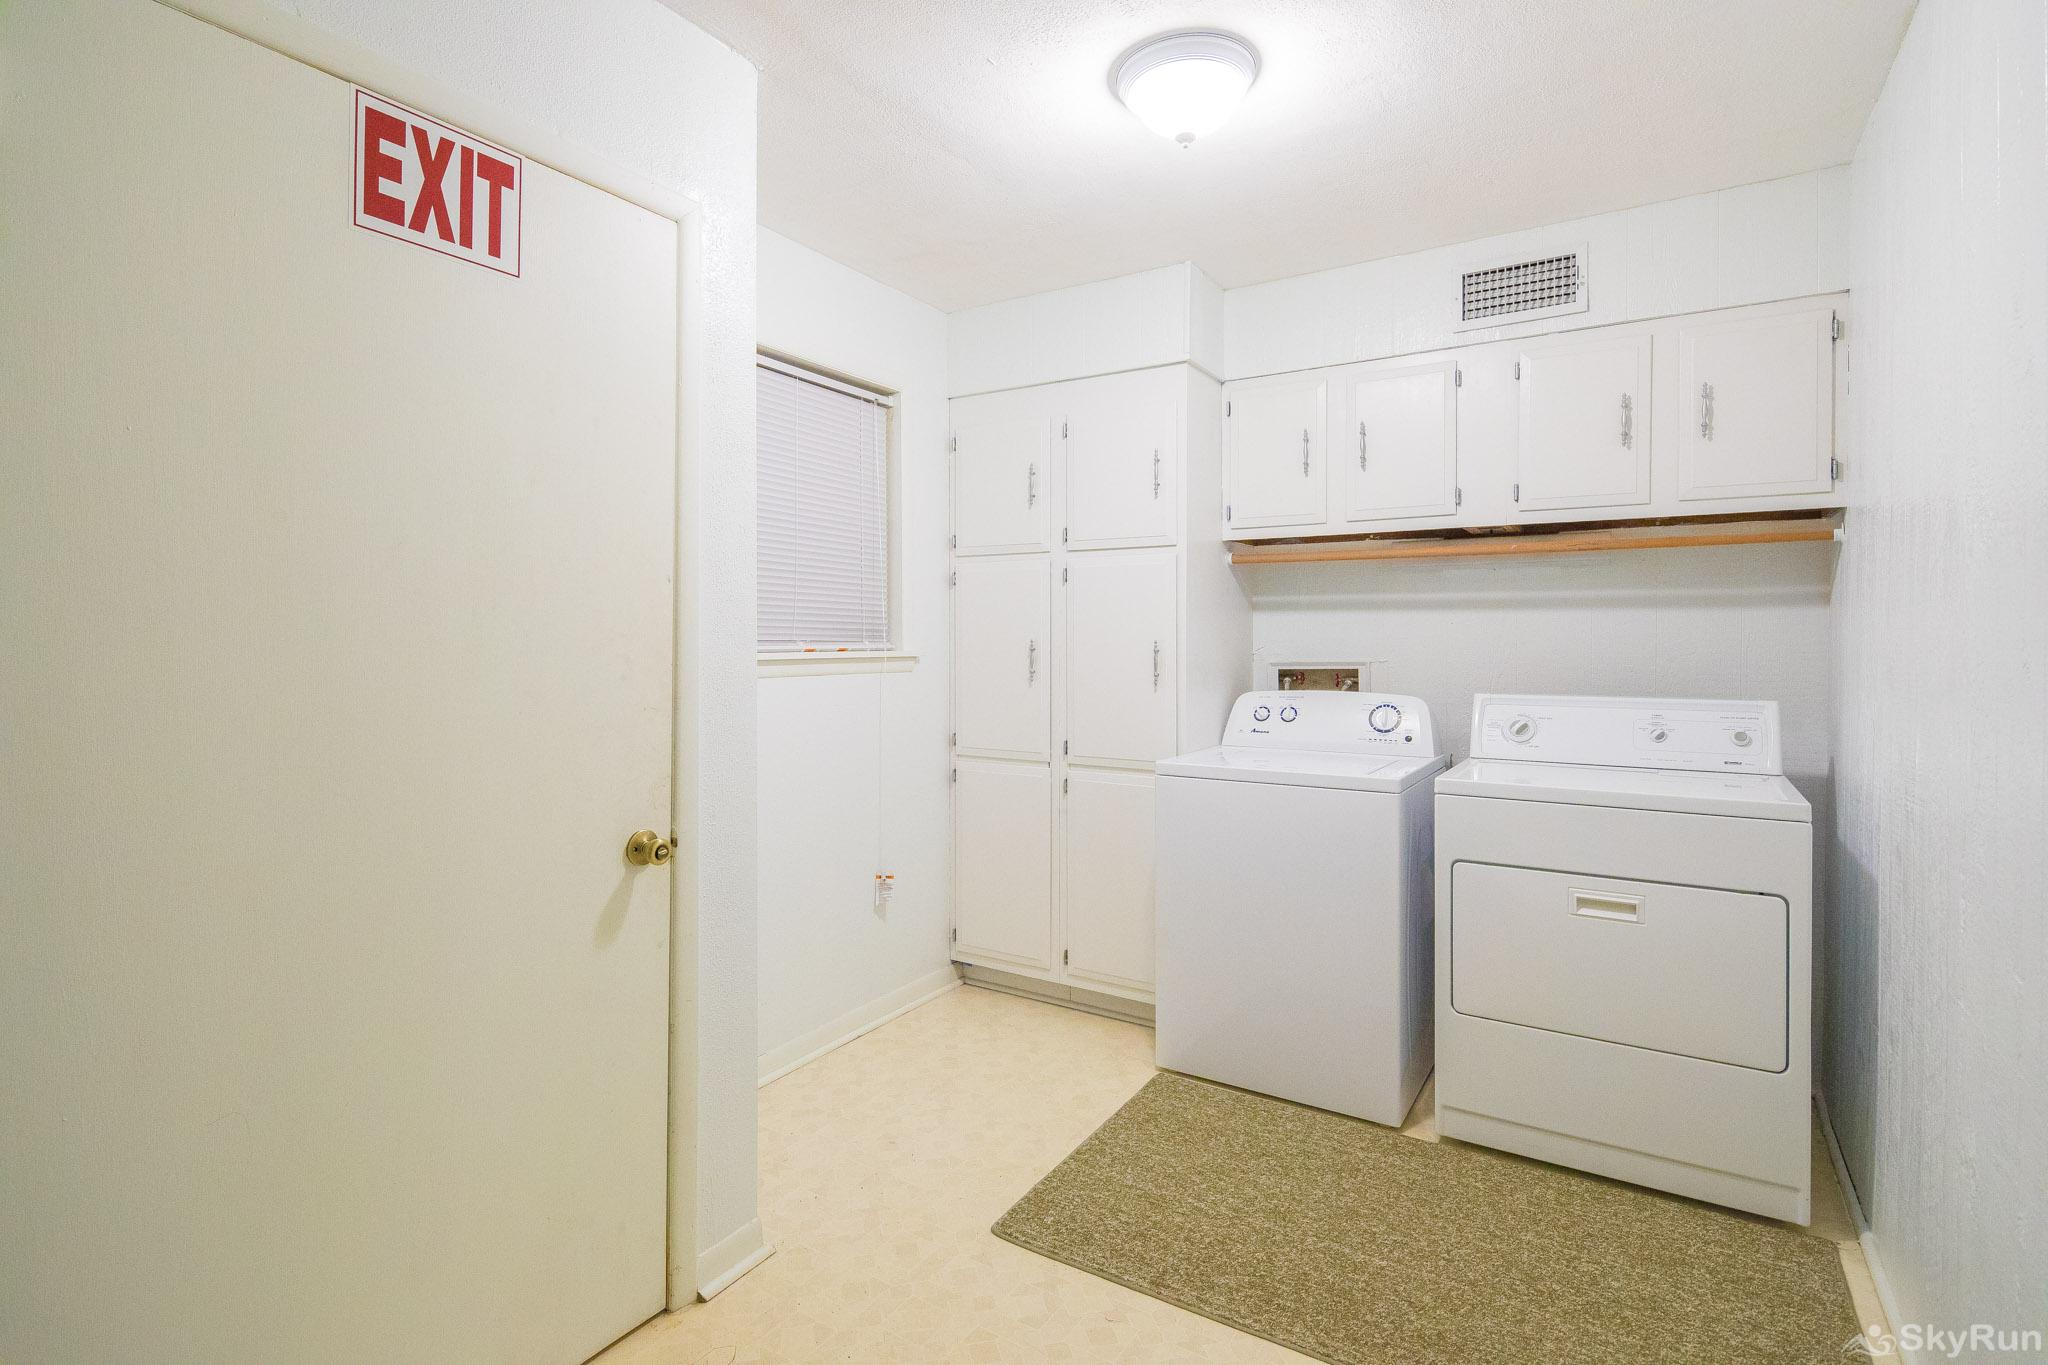 TEXAS ROSE LODGE Laundry room available for guest use